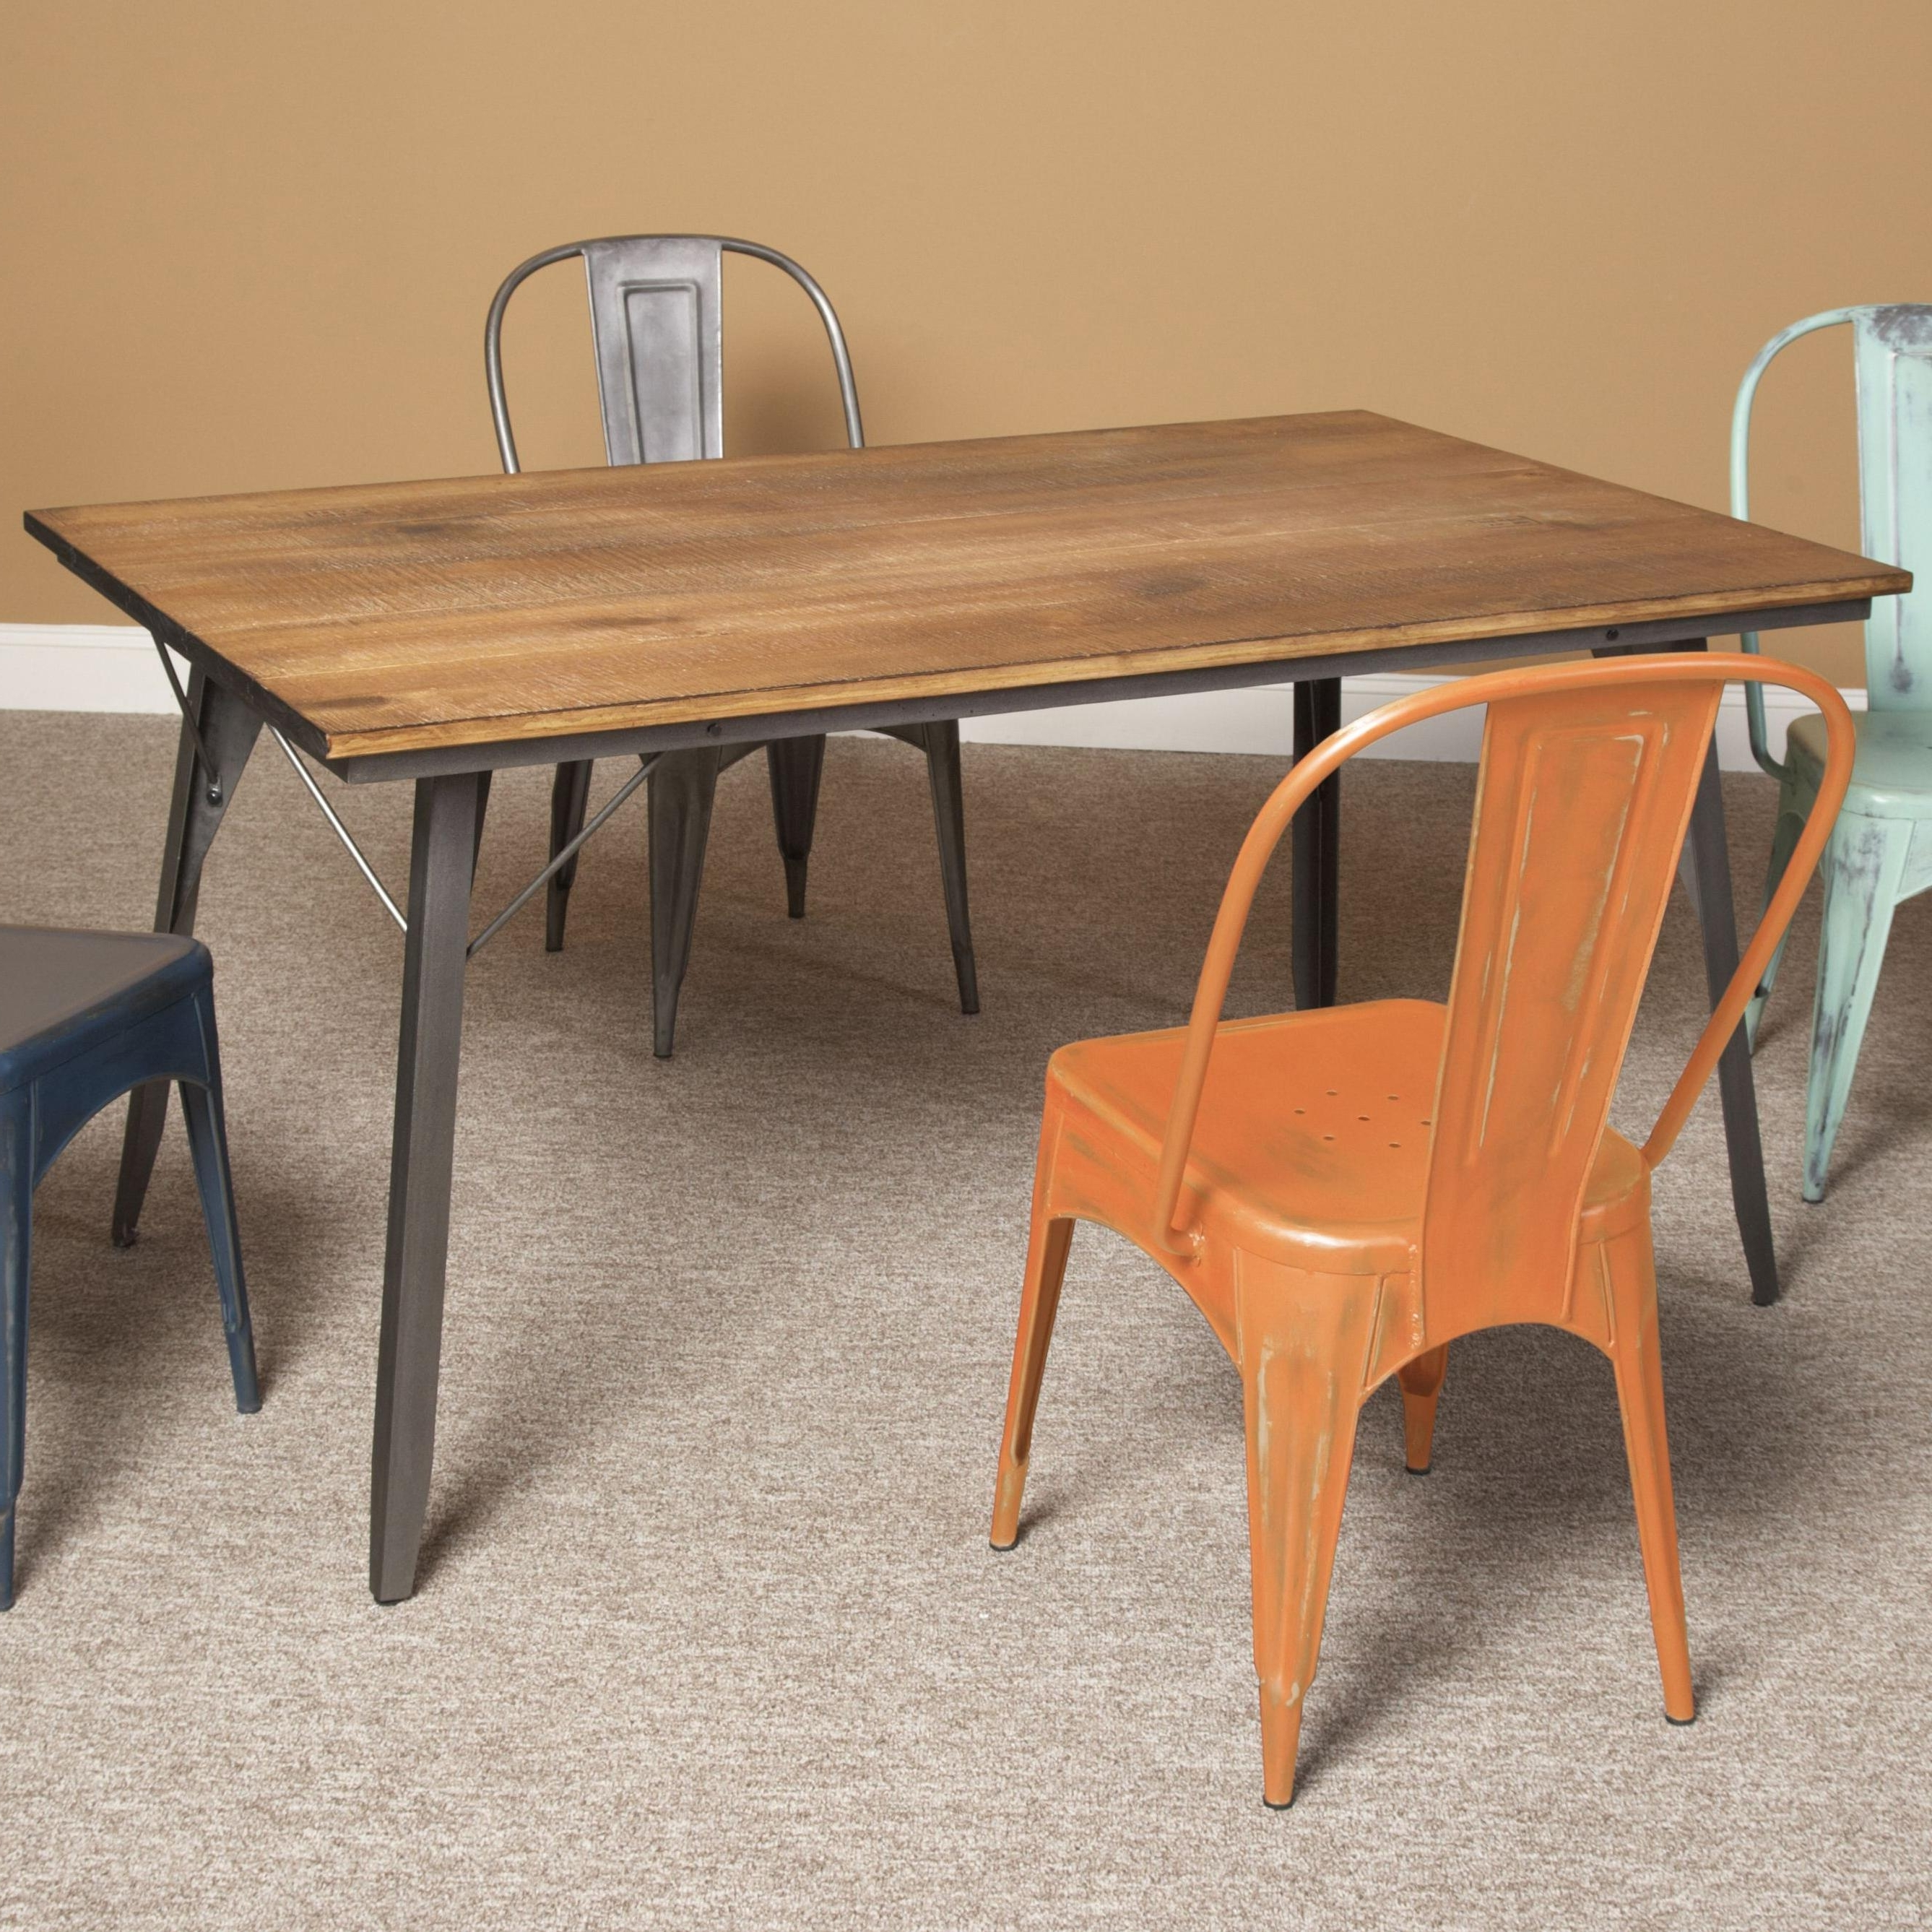 Olinde's Throughout Current Dining Tables With Metal Legs Wood Top (View 13 of 25)